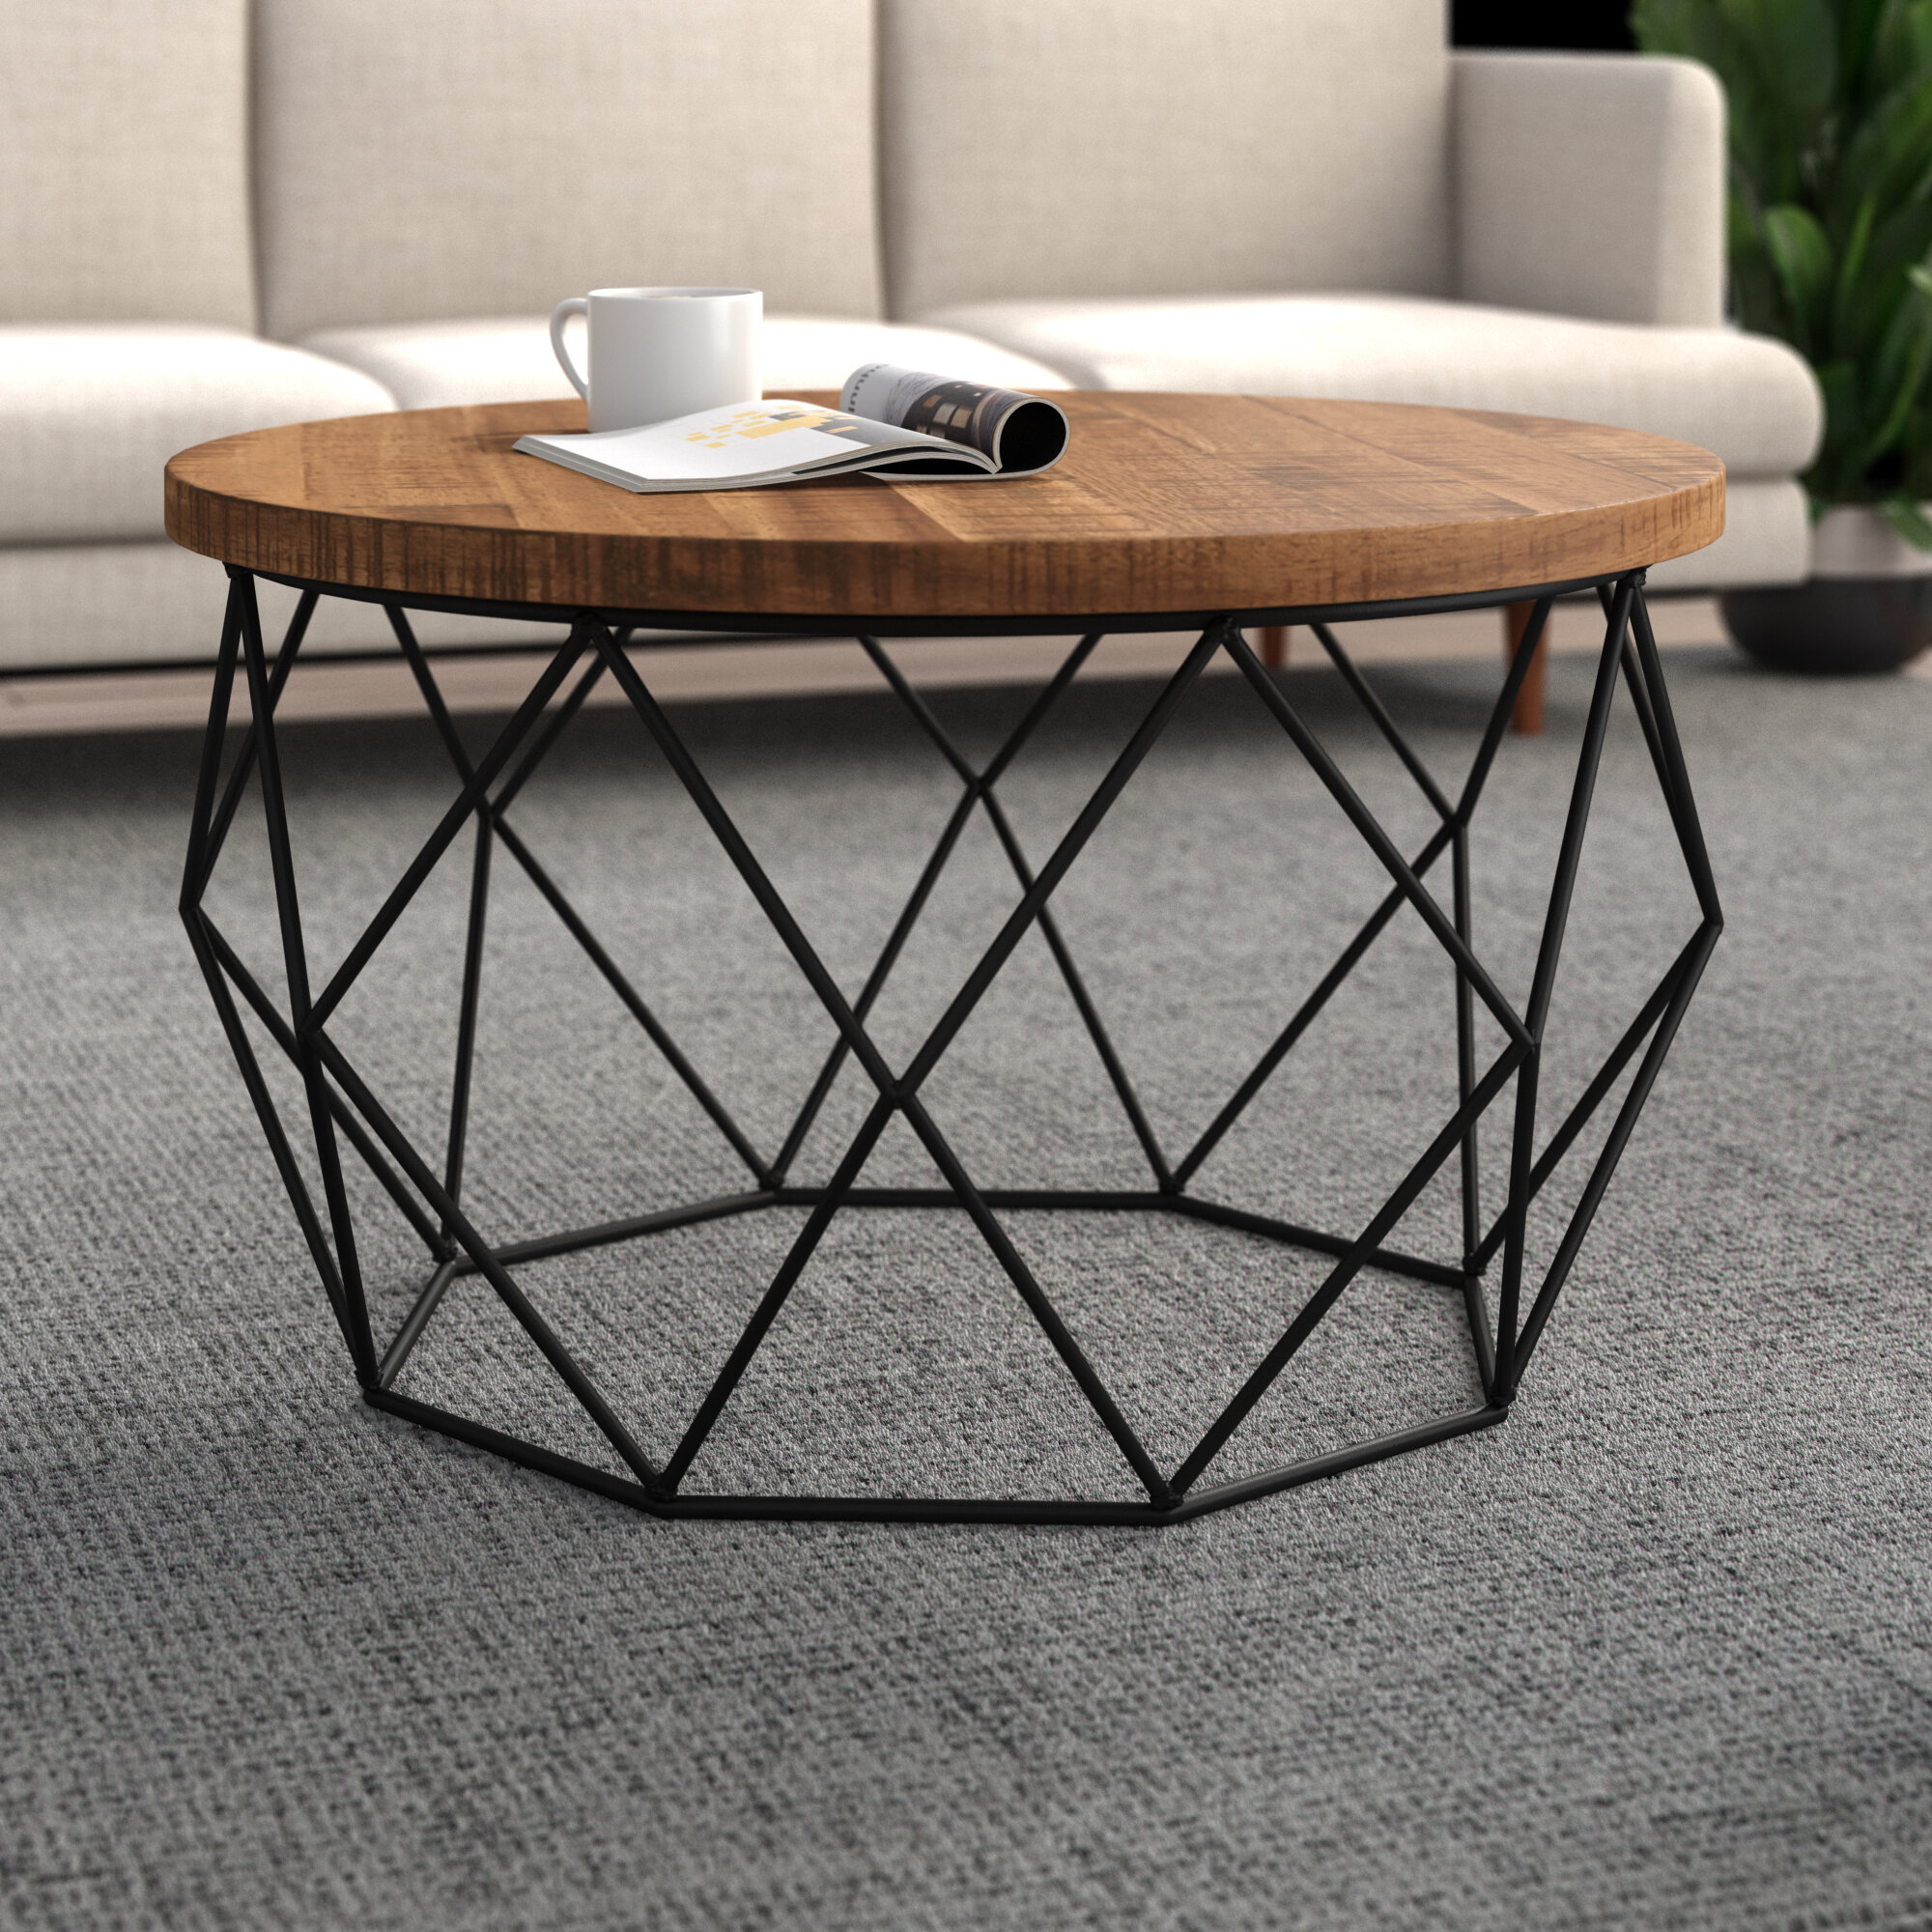 Antiqued Mirrored Coffee Table - Ideas on Foter | 2000x2000